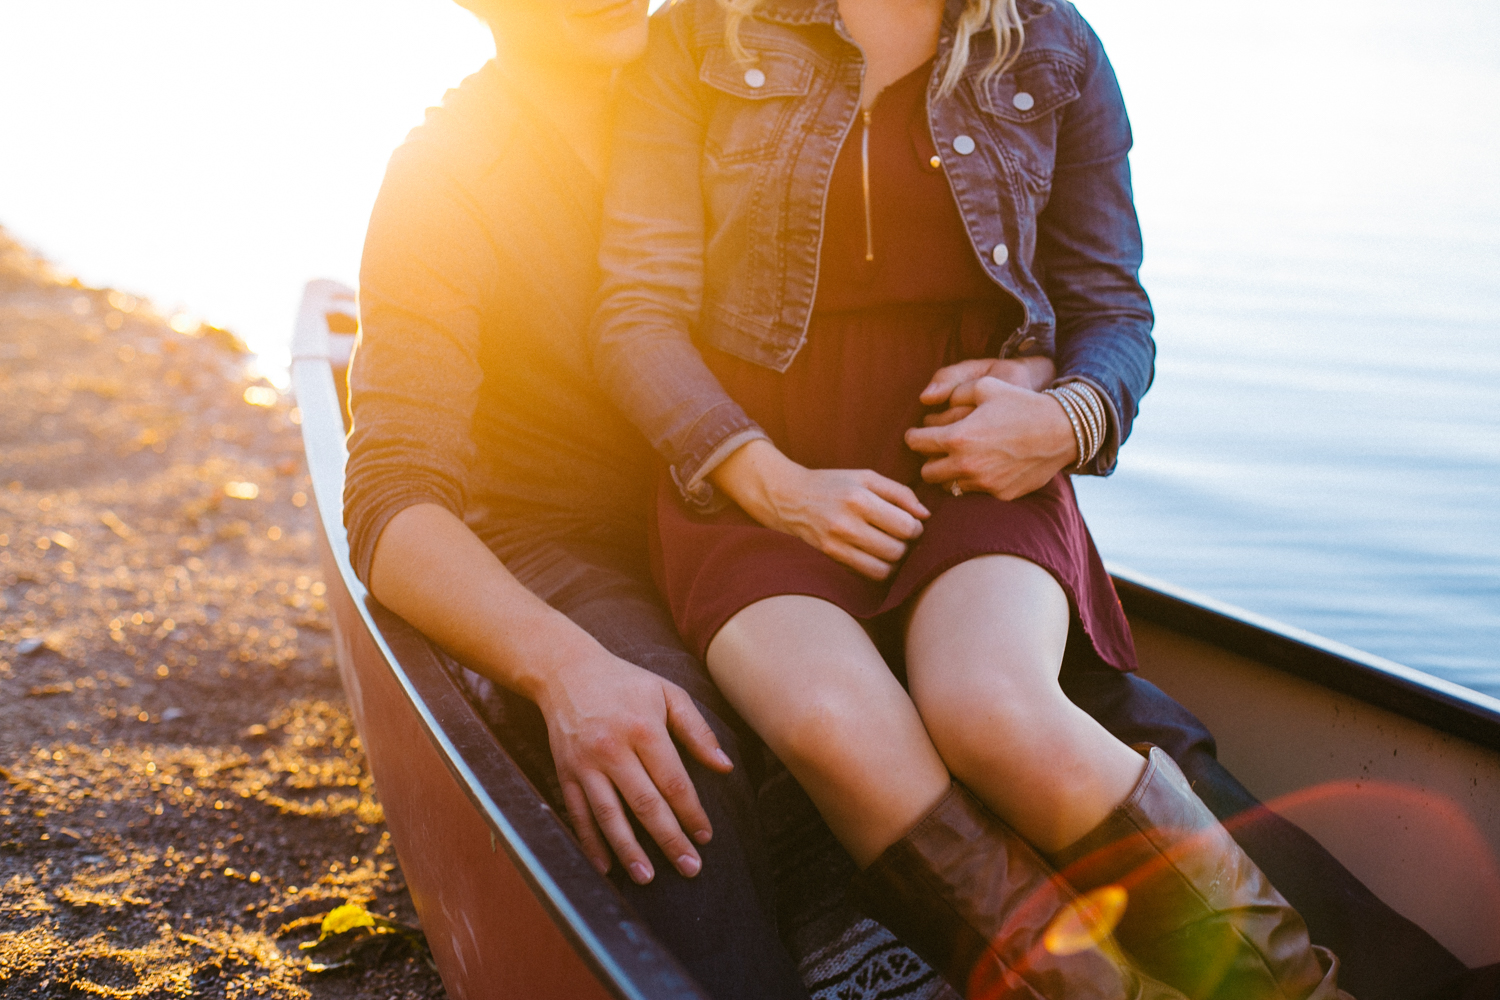 lethbridge-engagement-photography-love-and-be-loved-photography-steven-marlene-park-lake-engaged-picture-image-photo-28.jpg